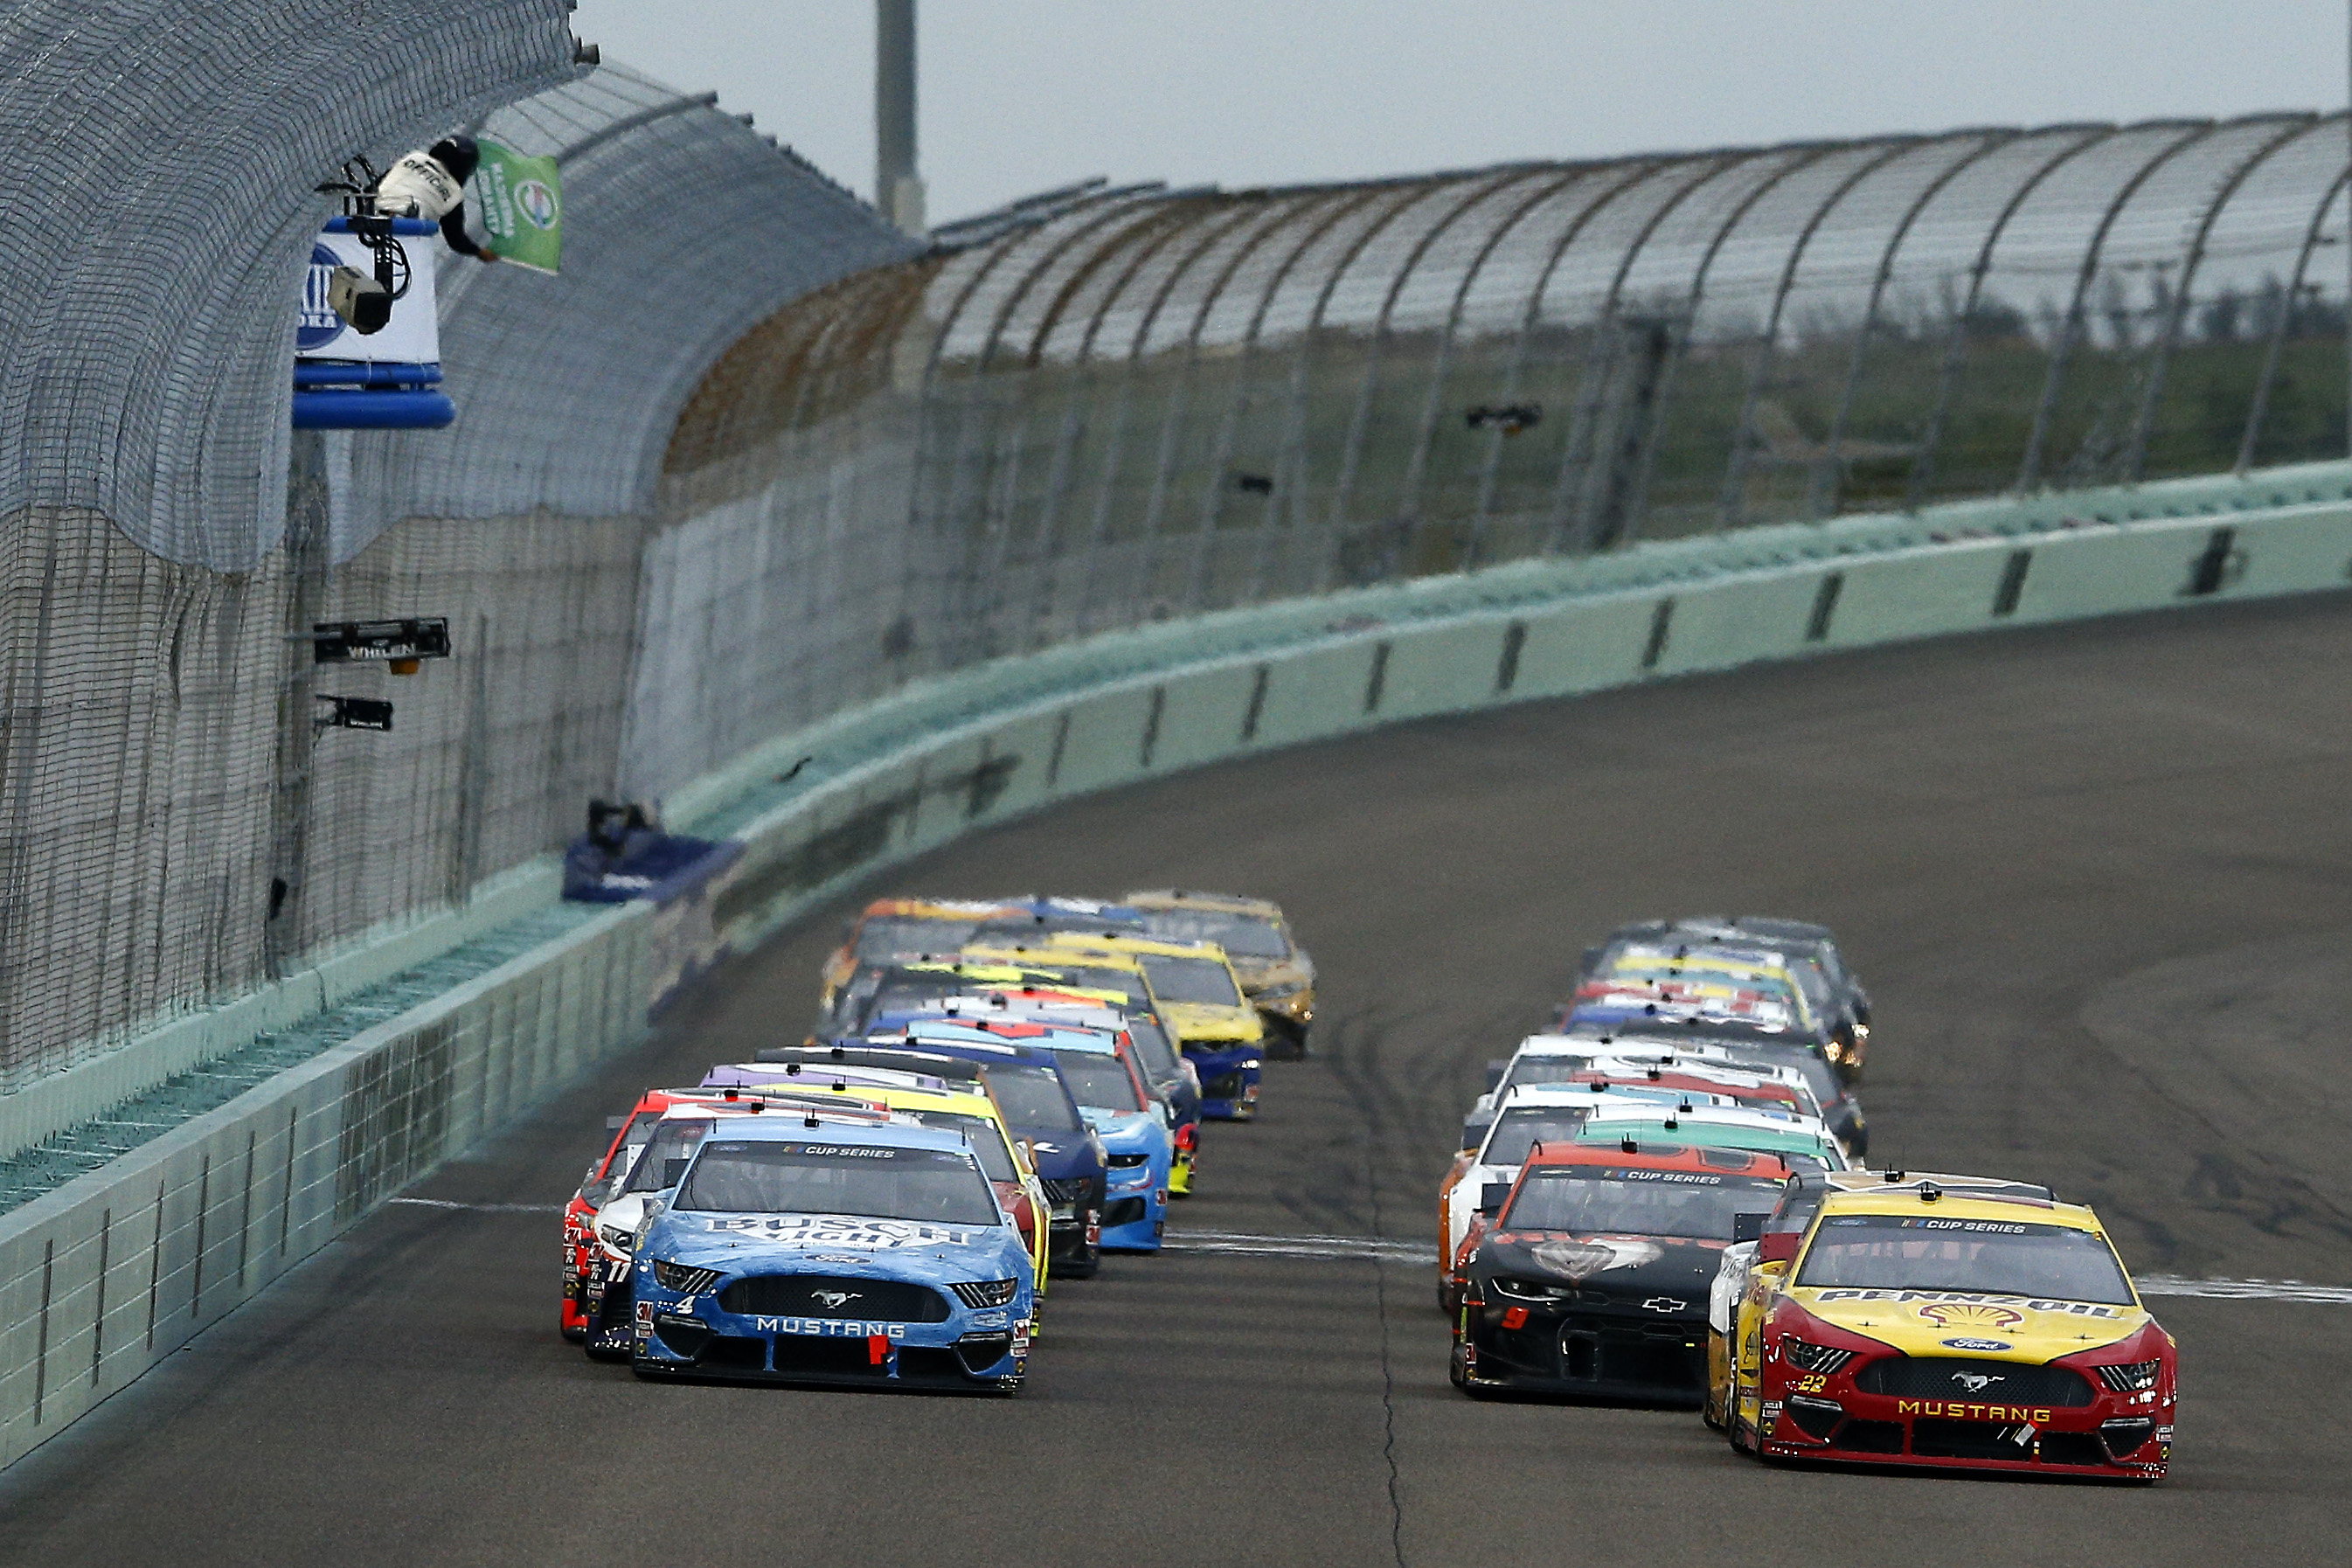 NASCAR drivers Joey Logano and Kevin Harvick lead the restart during the NASCAR Cup Series Dixie Vodka 400